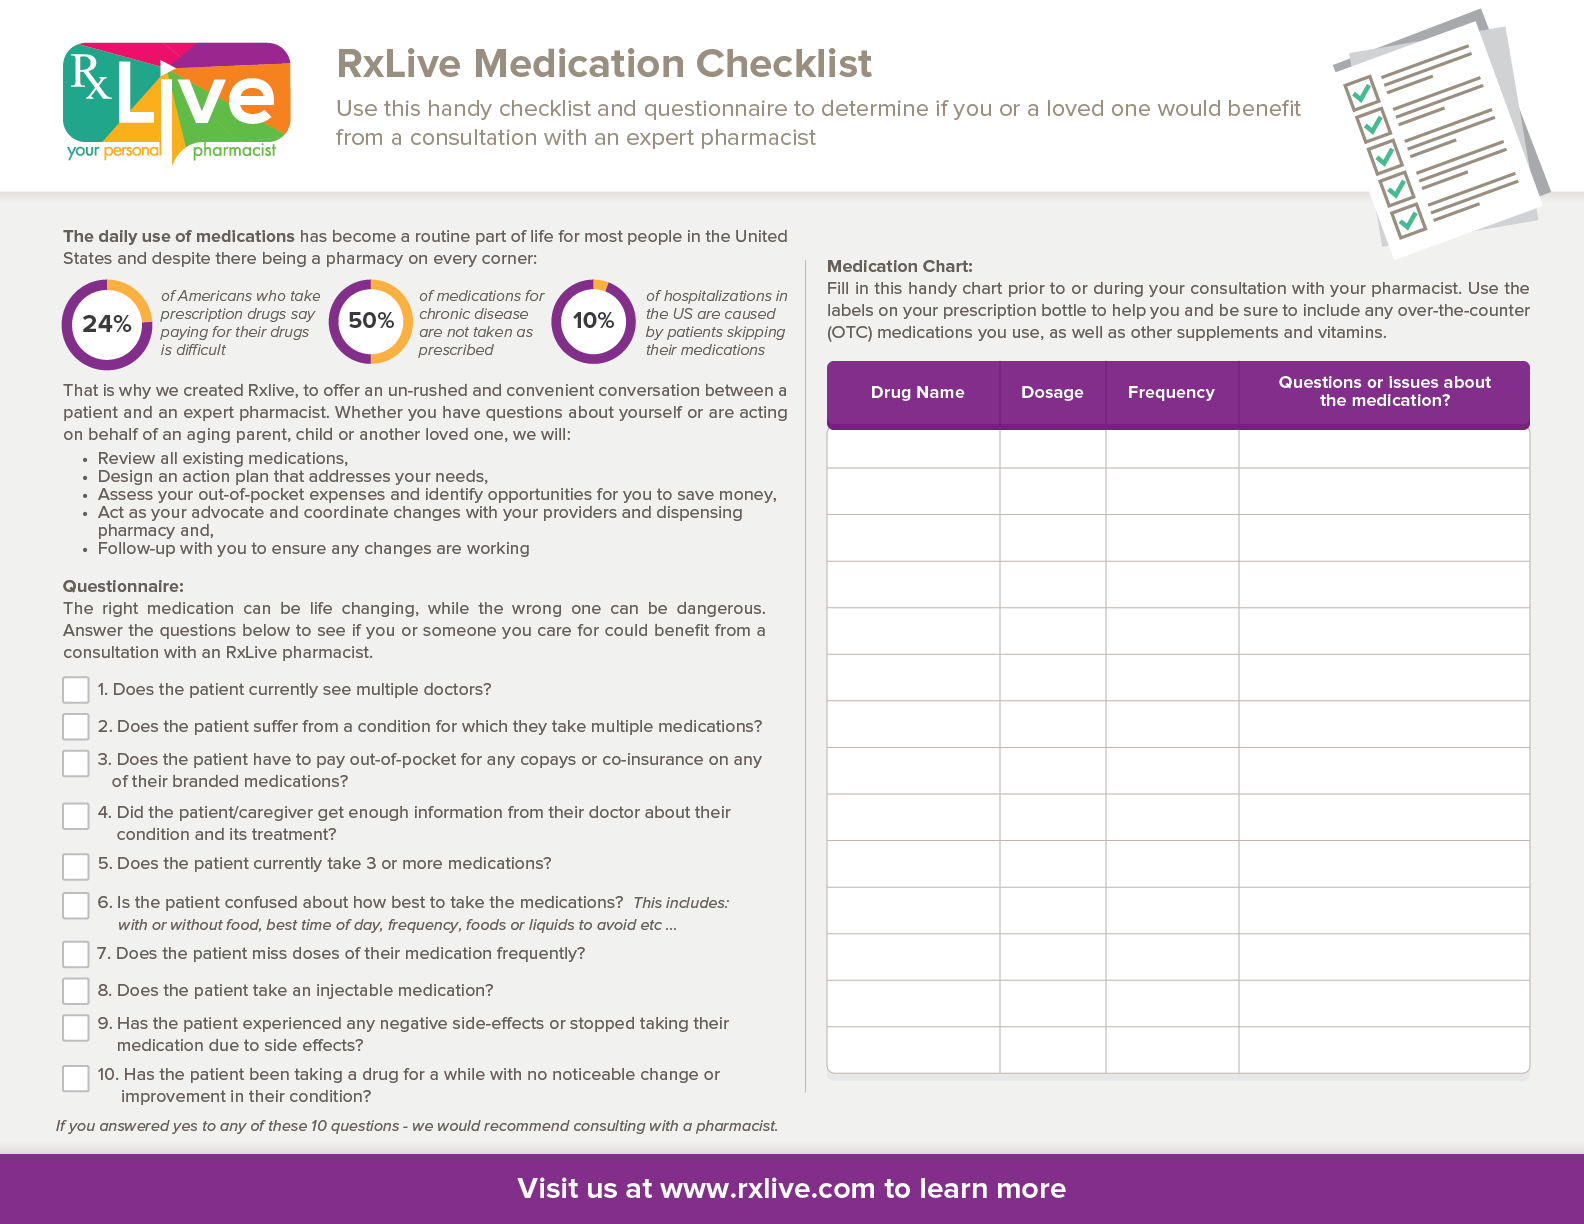 RxLive - Medication Checklist.png